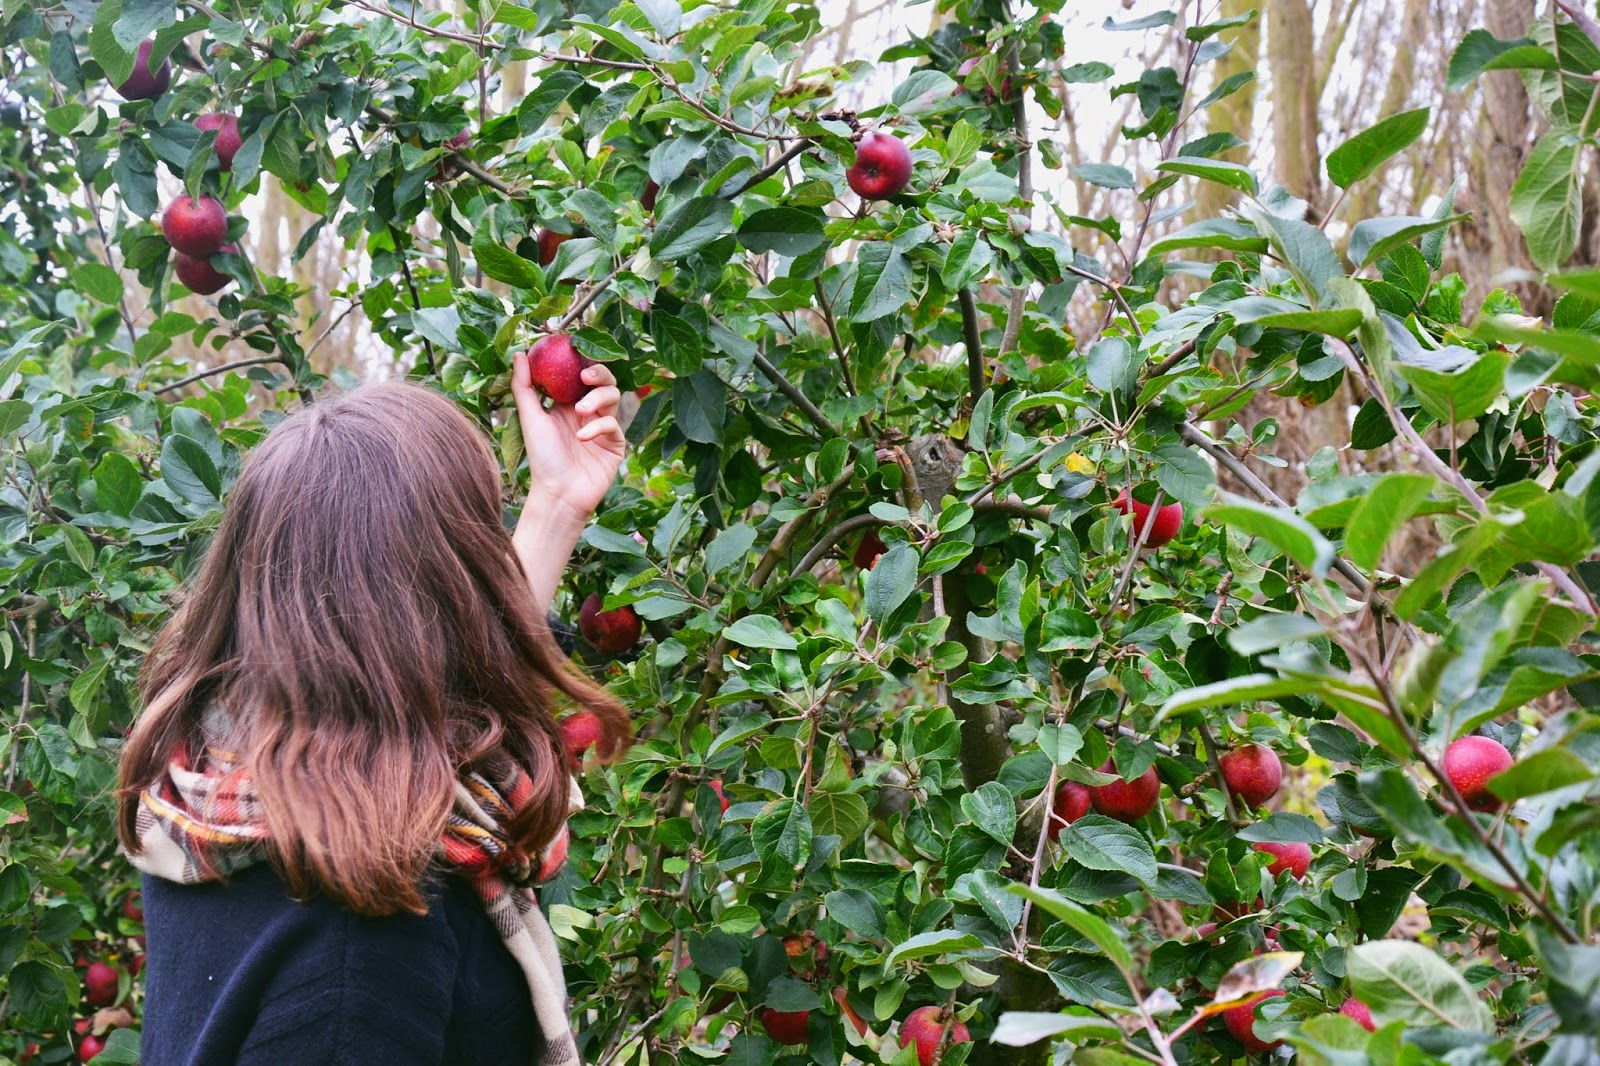 Apple picking at the white house farm in norwich